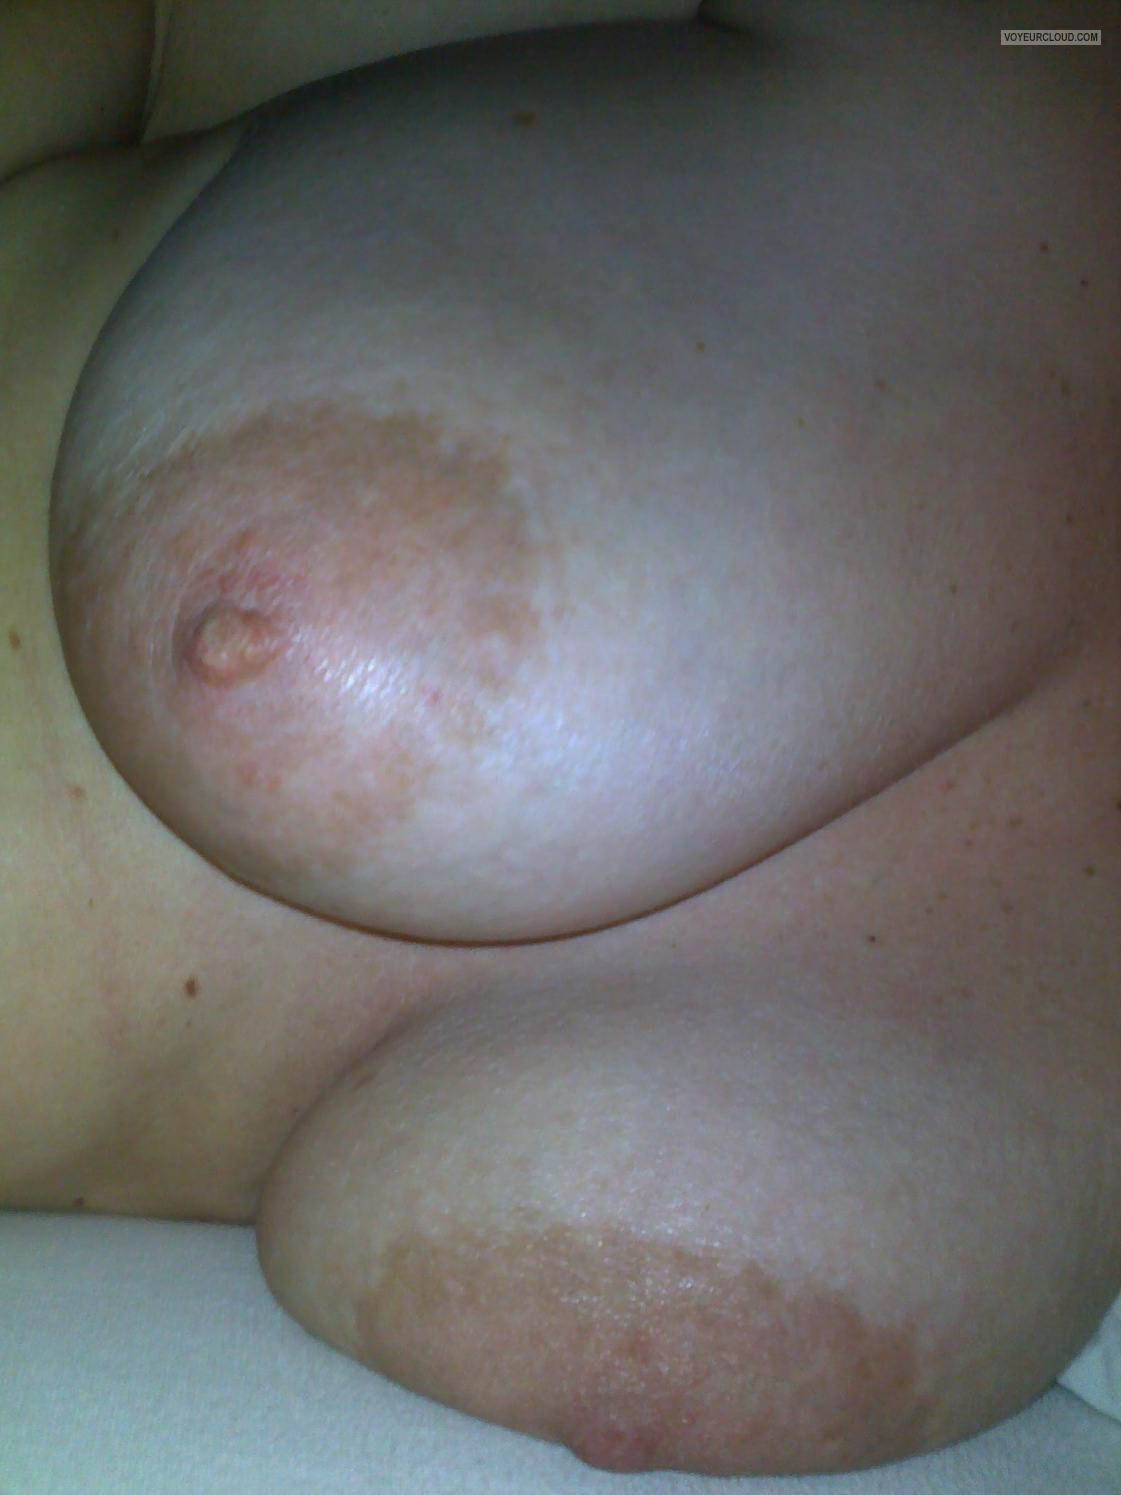 Tit Flash: My Big Tits - Scarlet from United States